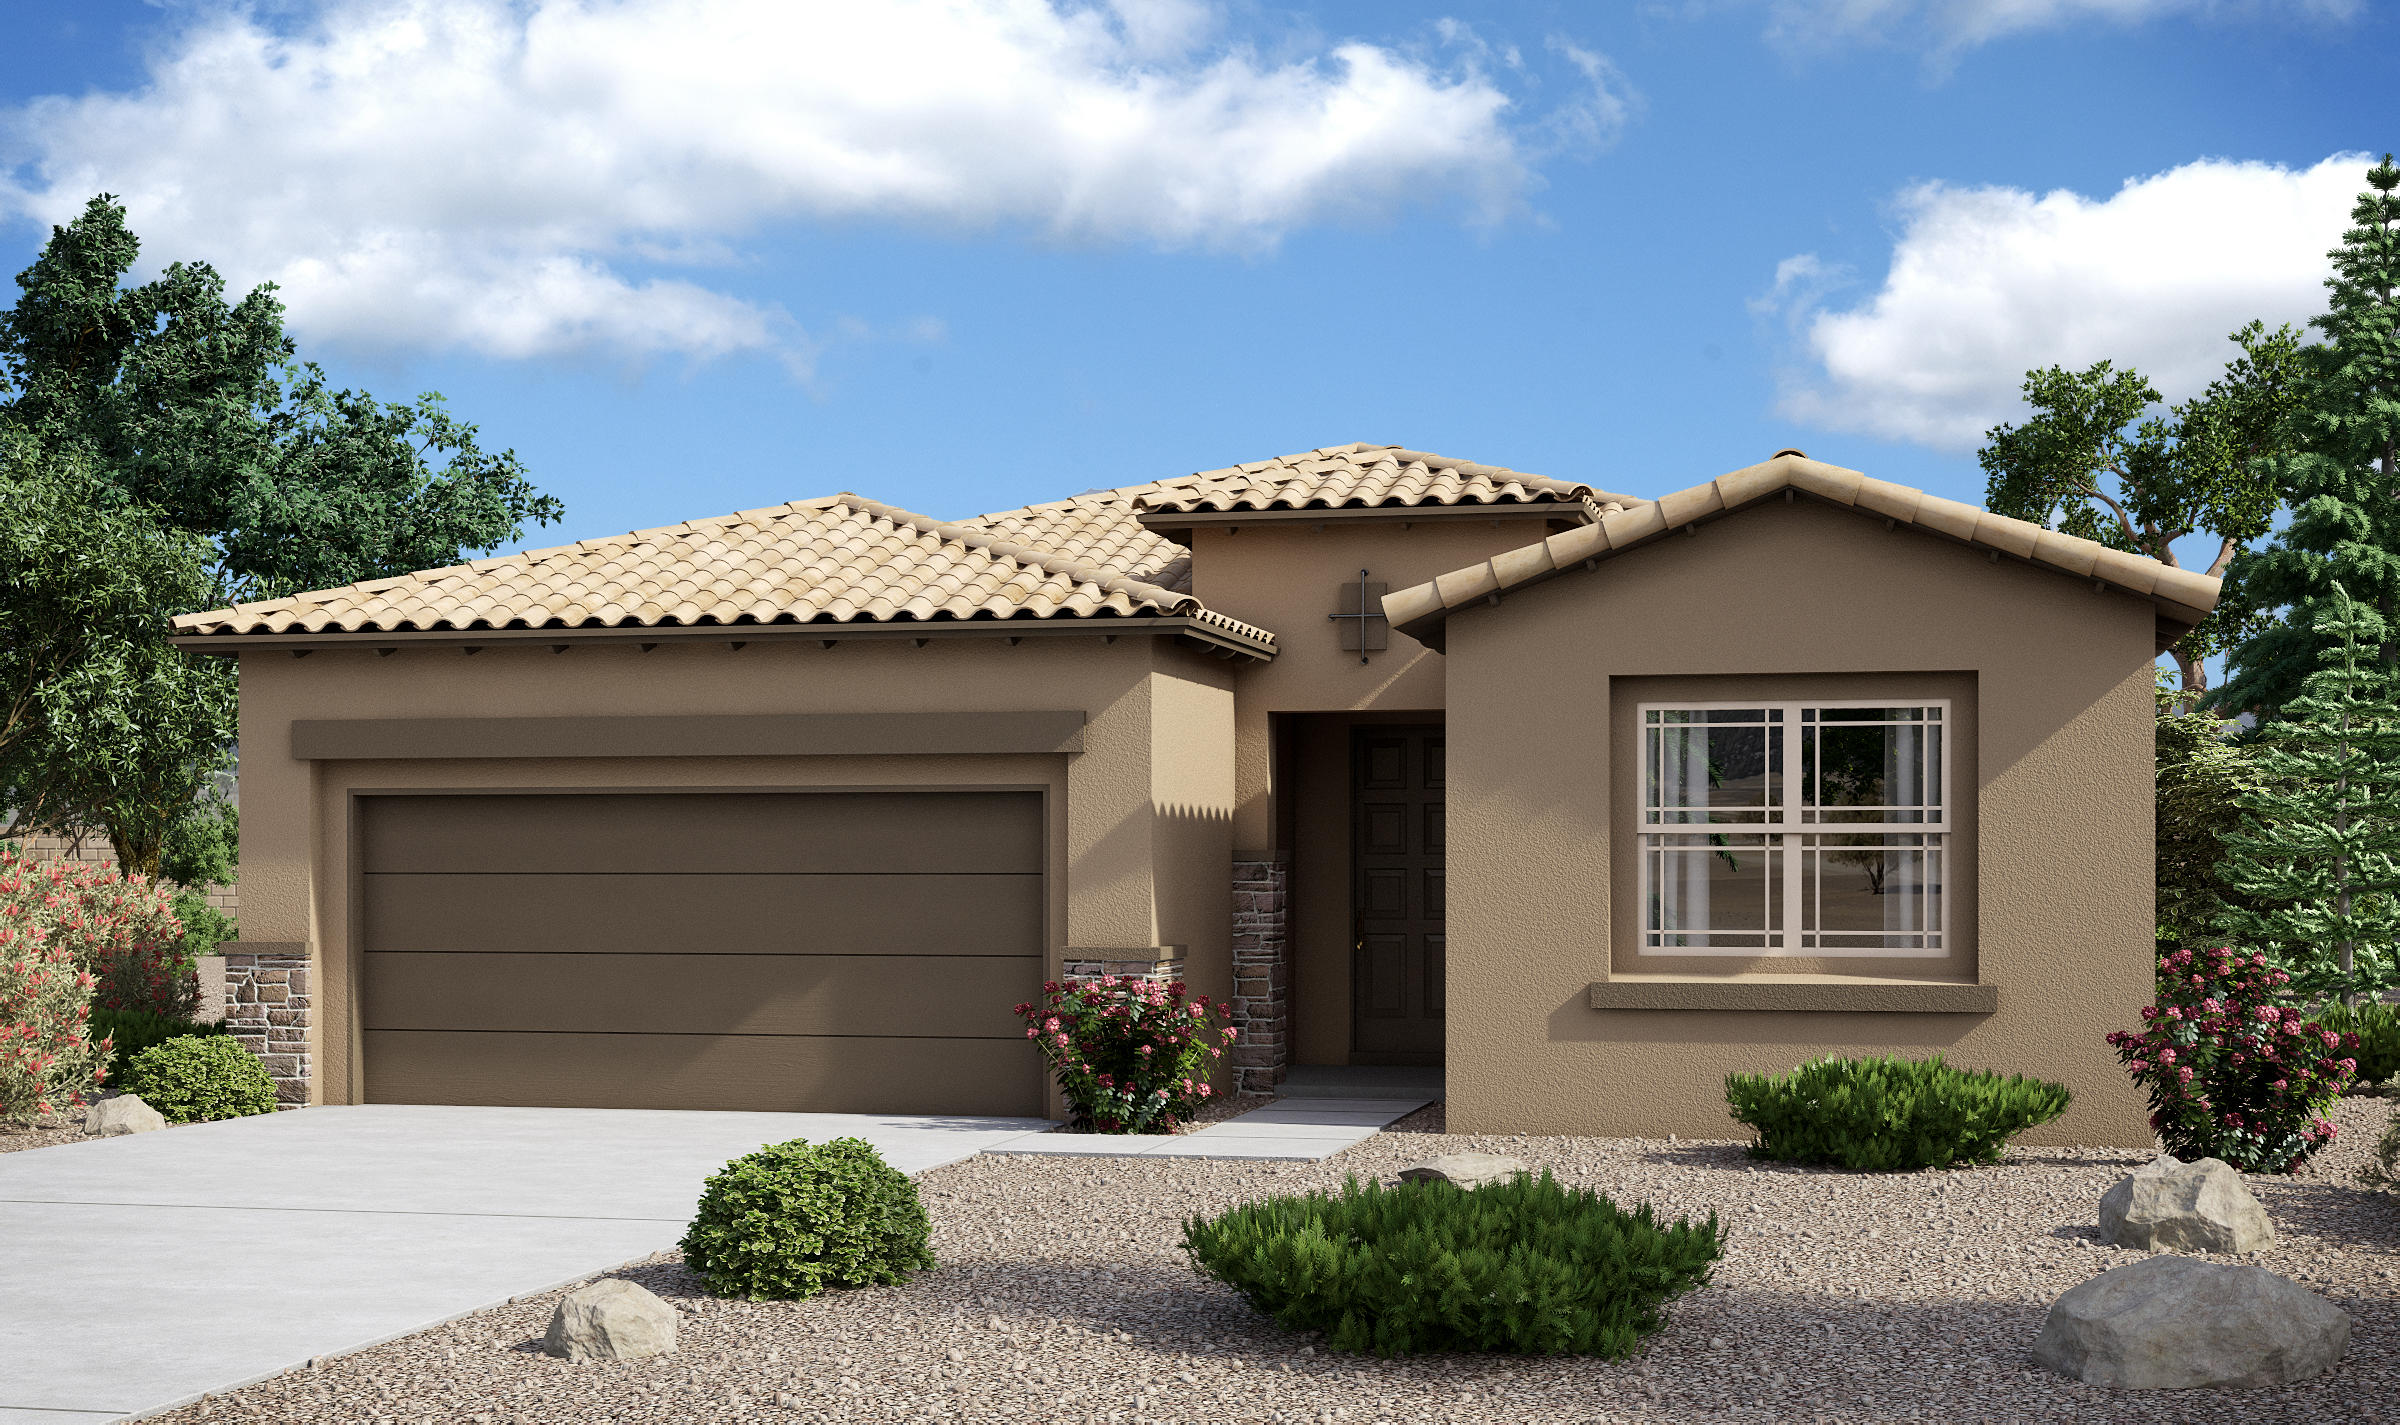 6327 NW Basil Place, Northwest Albuquerque and Northwest Heights, New Mexico